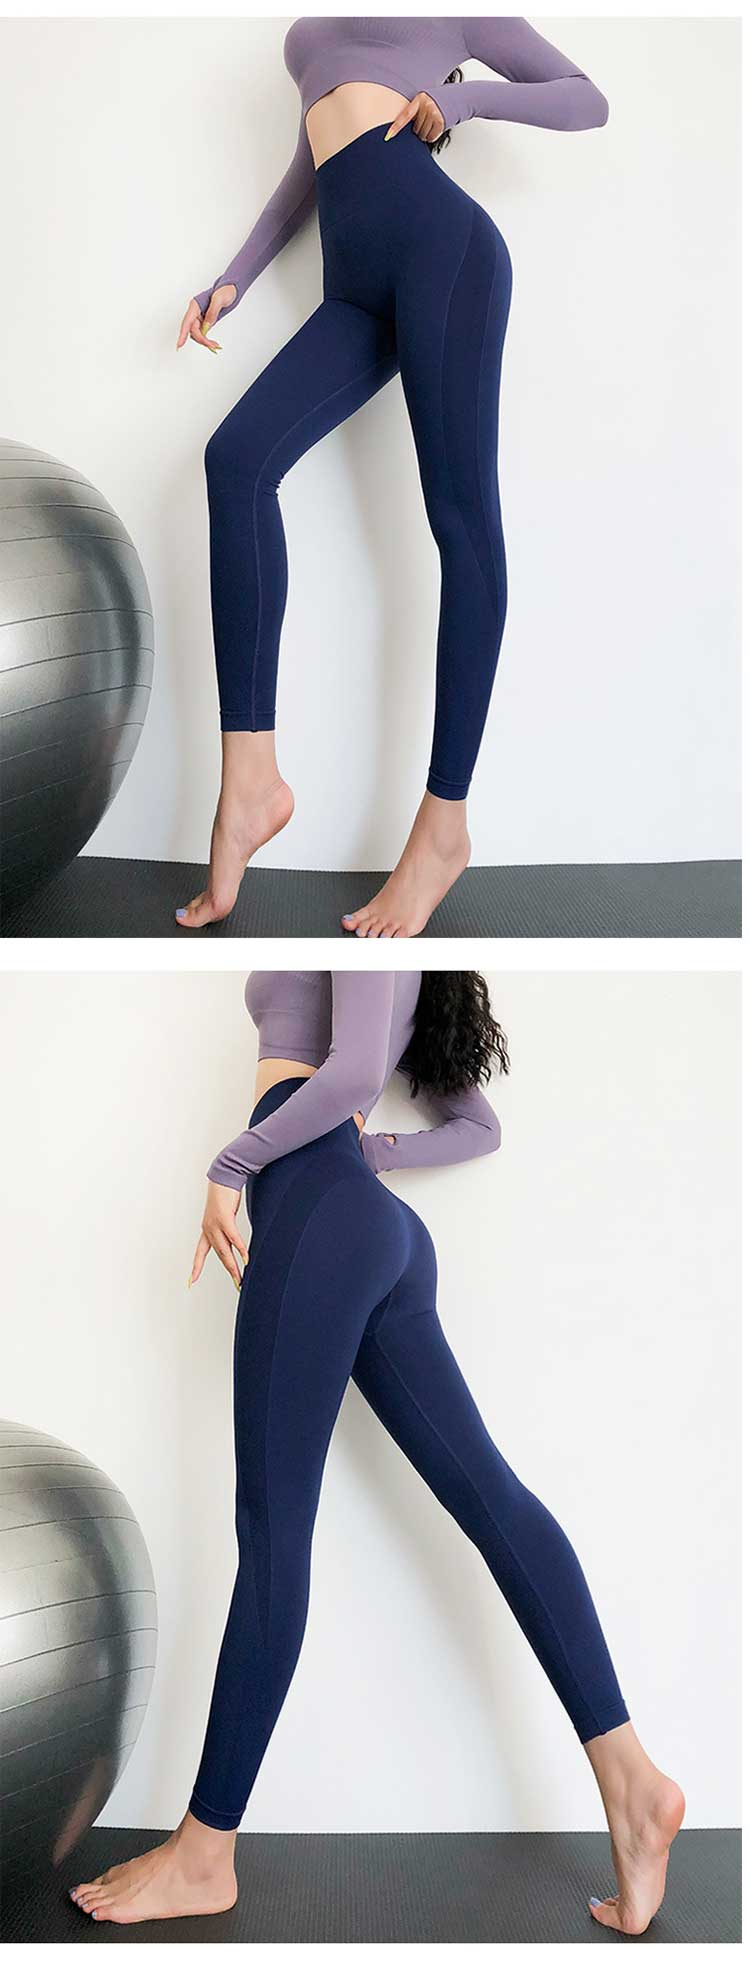 Raise-waist-line,-stretch-freely-not-to-drop-the-crotch,-